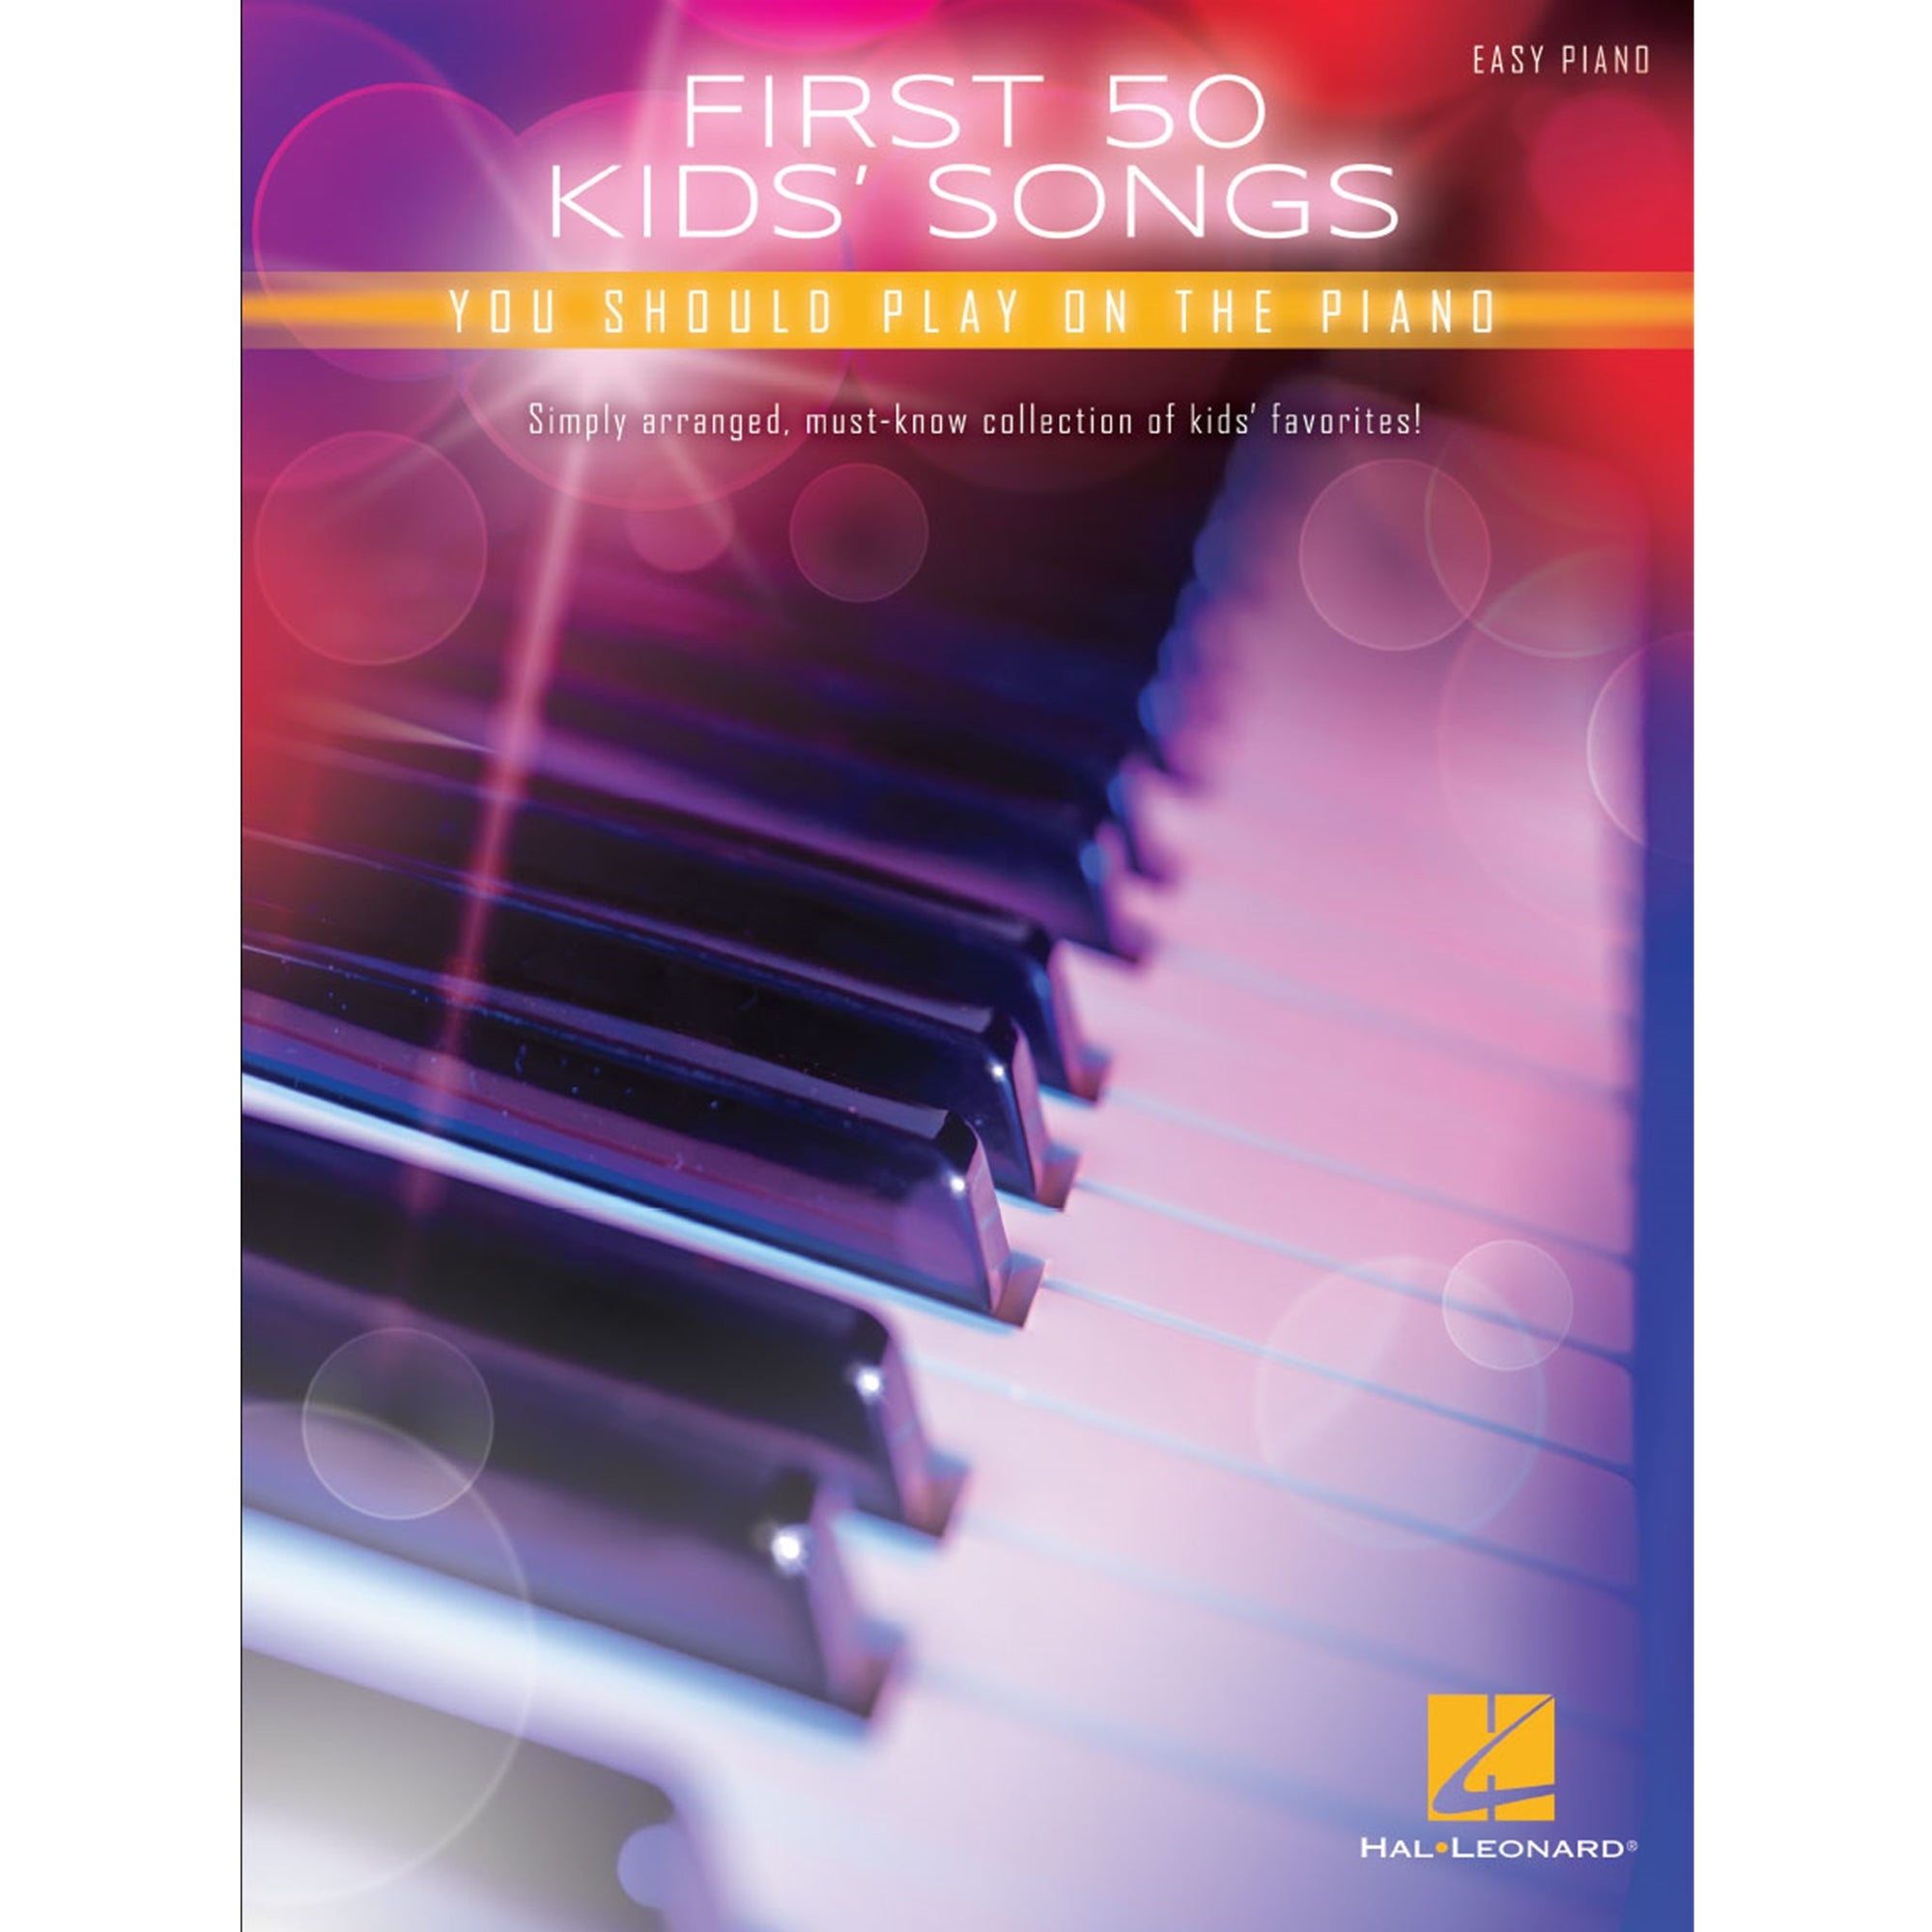 HAL LEONARD 196071 First 50 Kids' Songs You Should Play on Piano